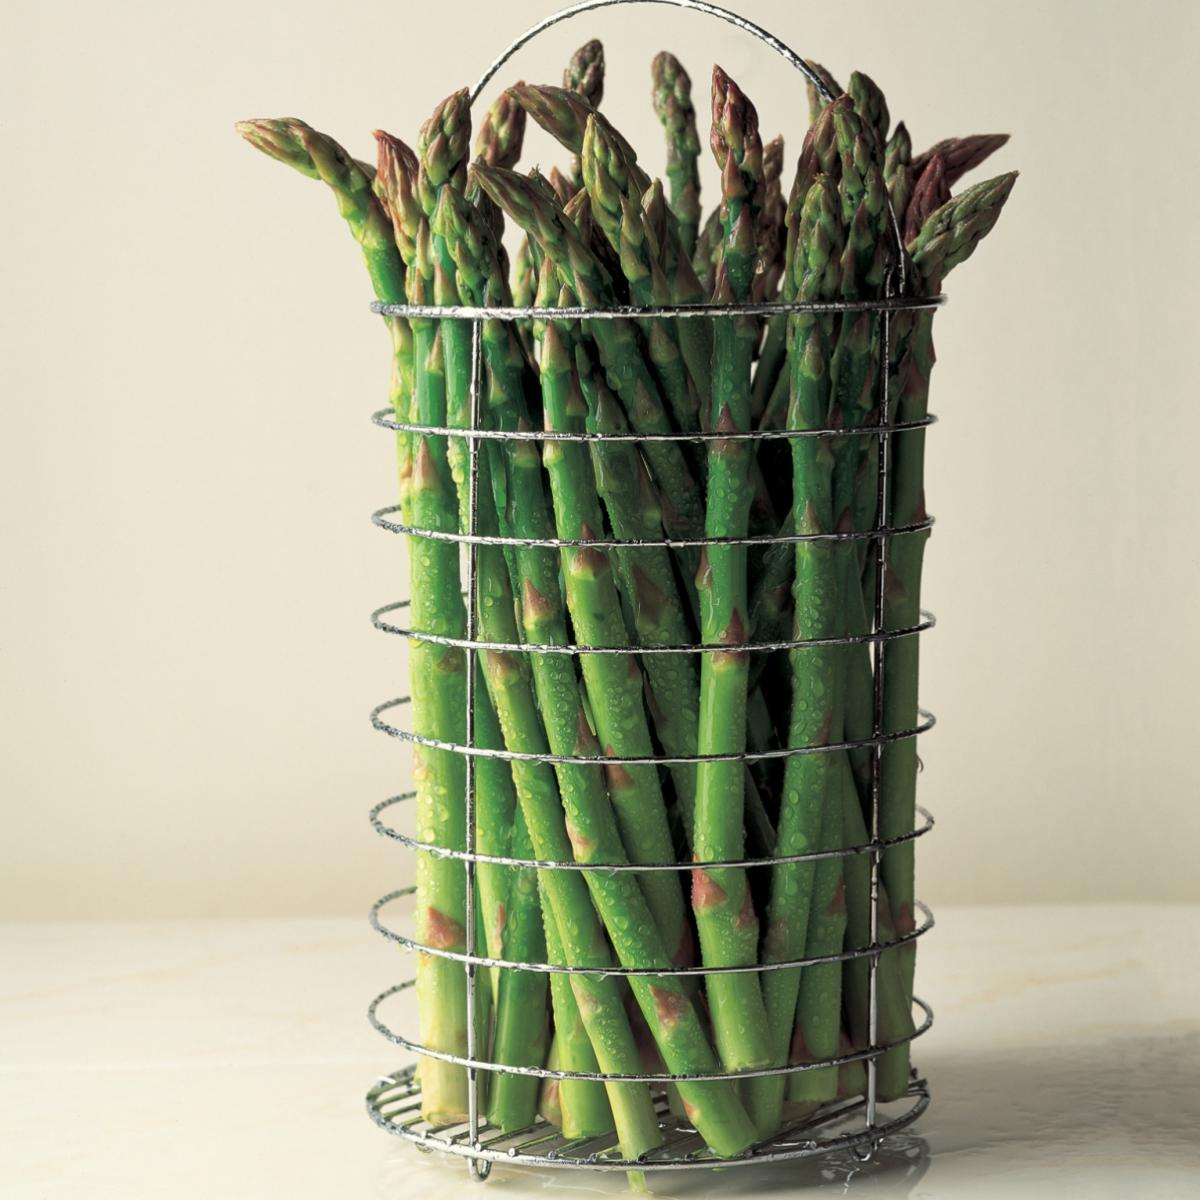 A picture of Delia's How to steam asparagus how to cook guide